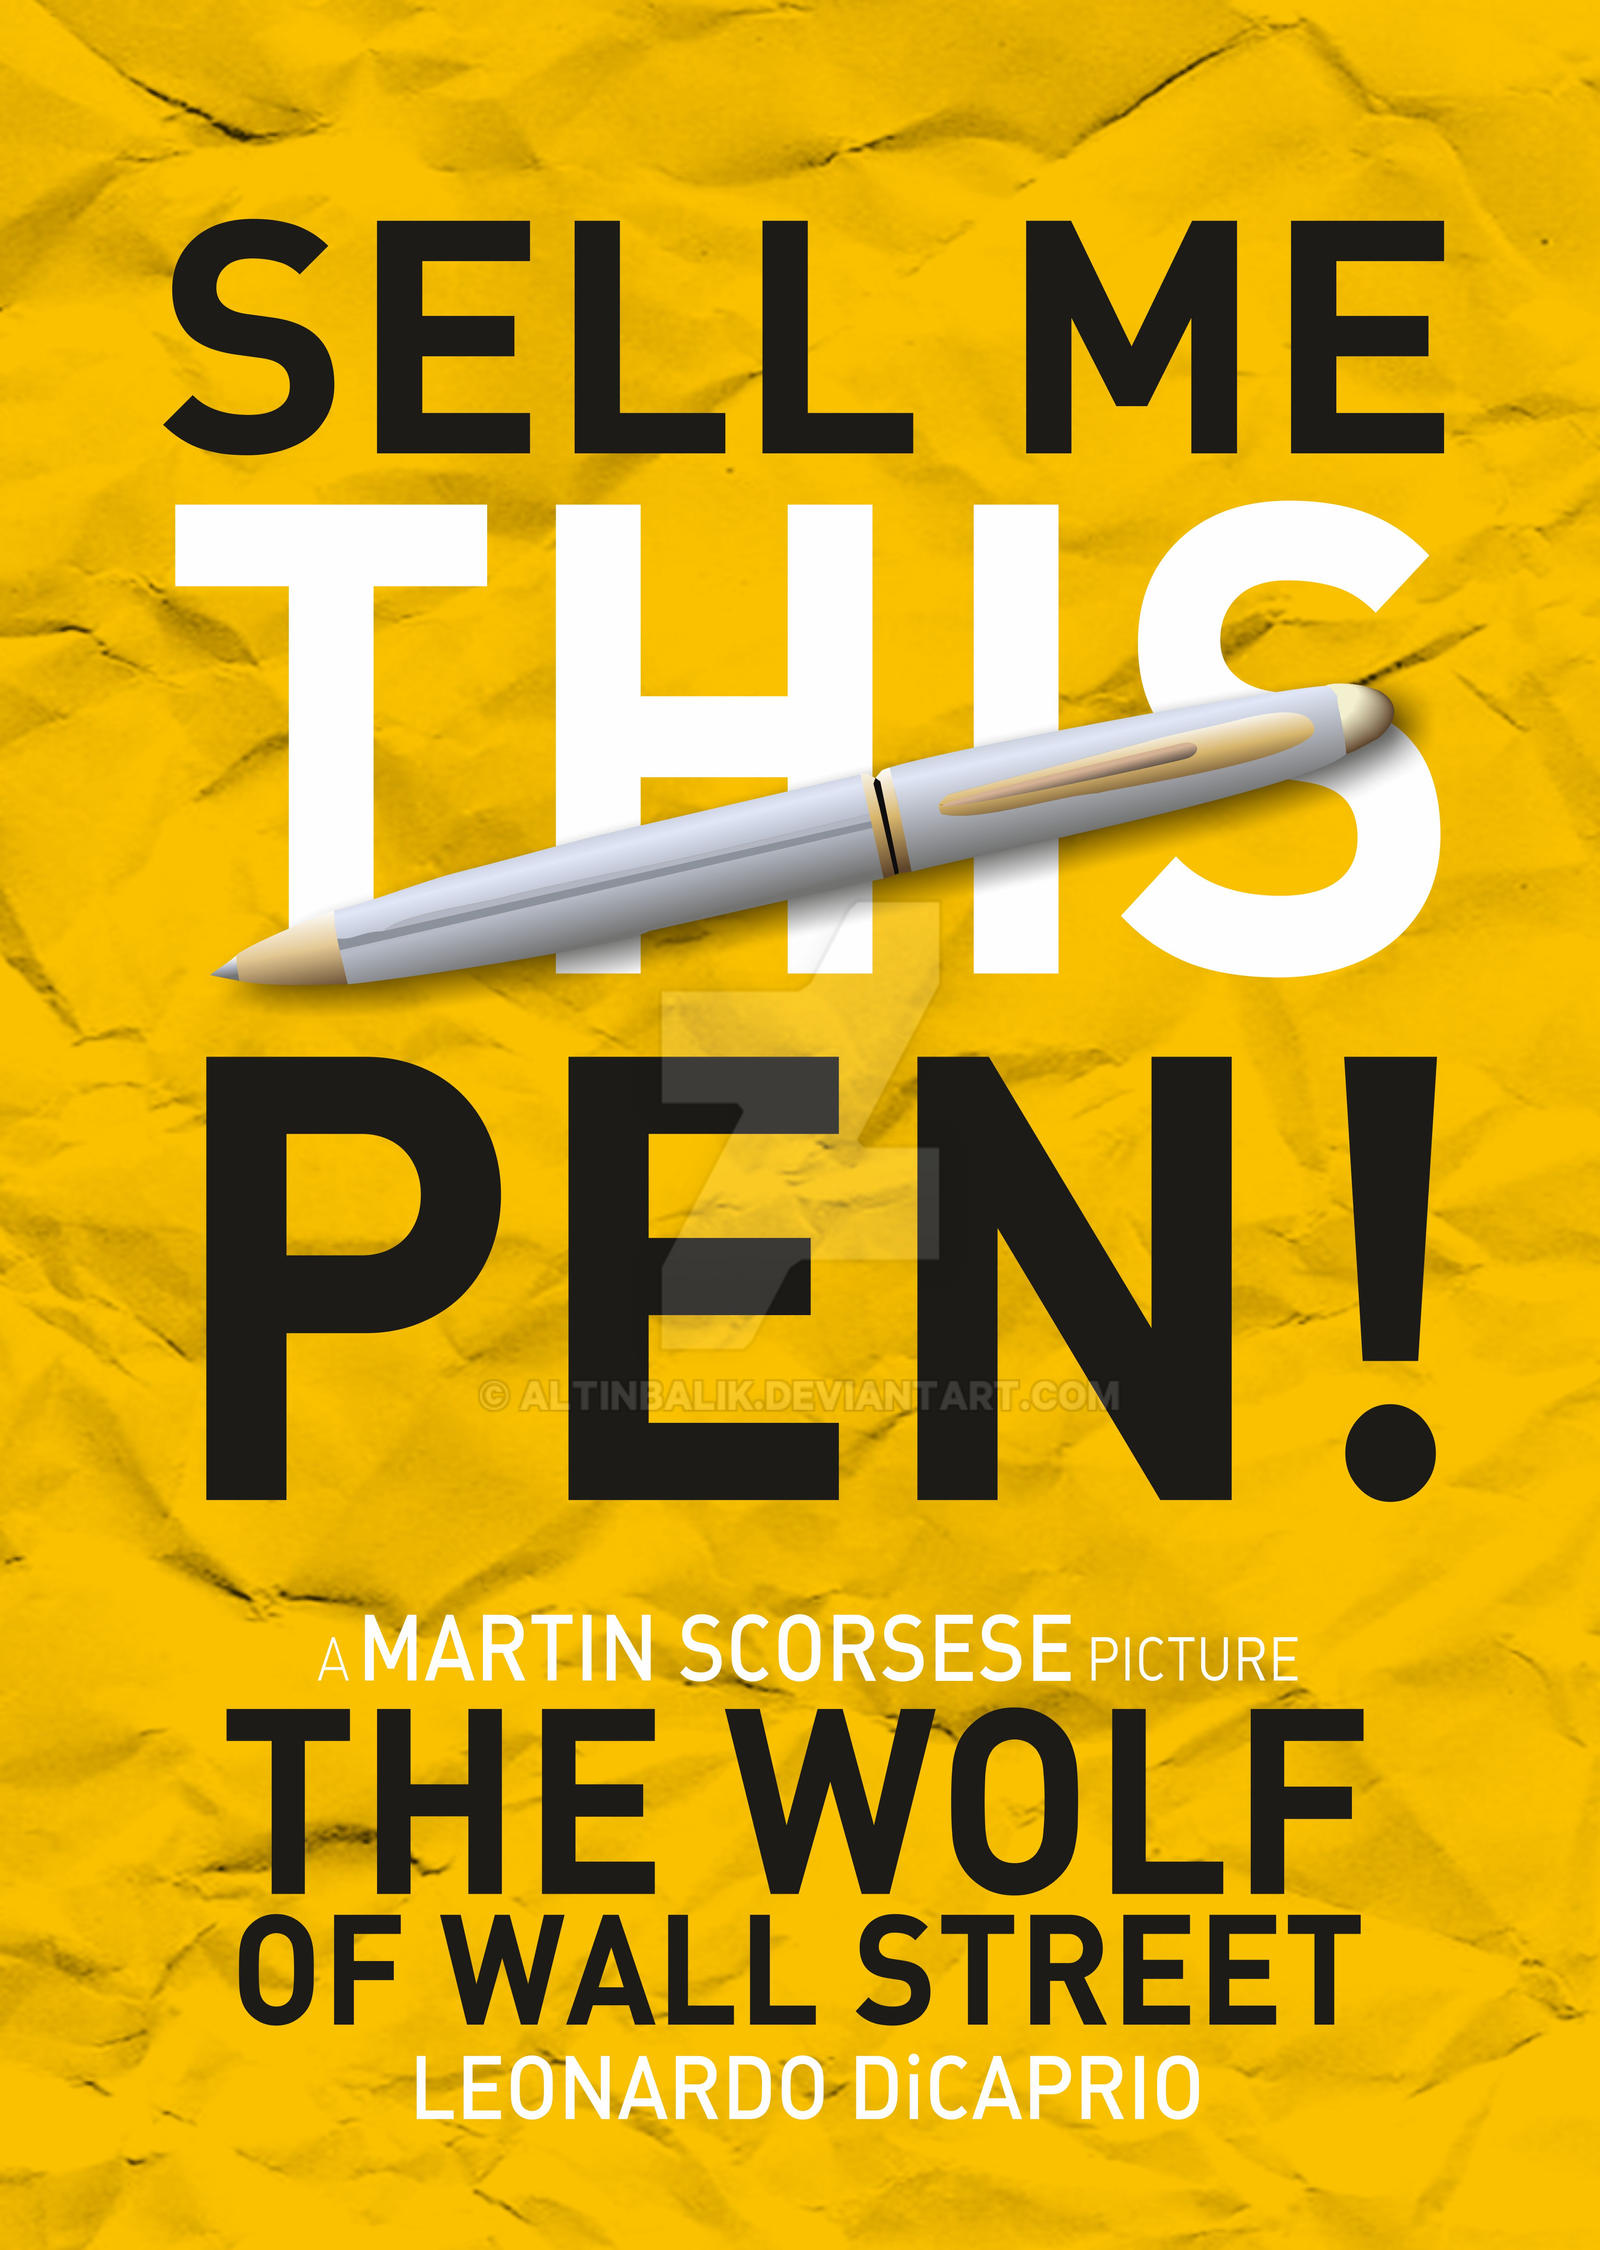 The wolf of wall street alternate poster by altinbalik on for Buy art online india